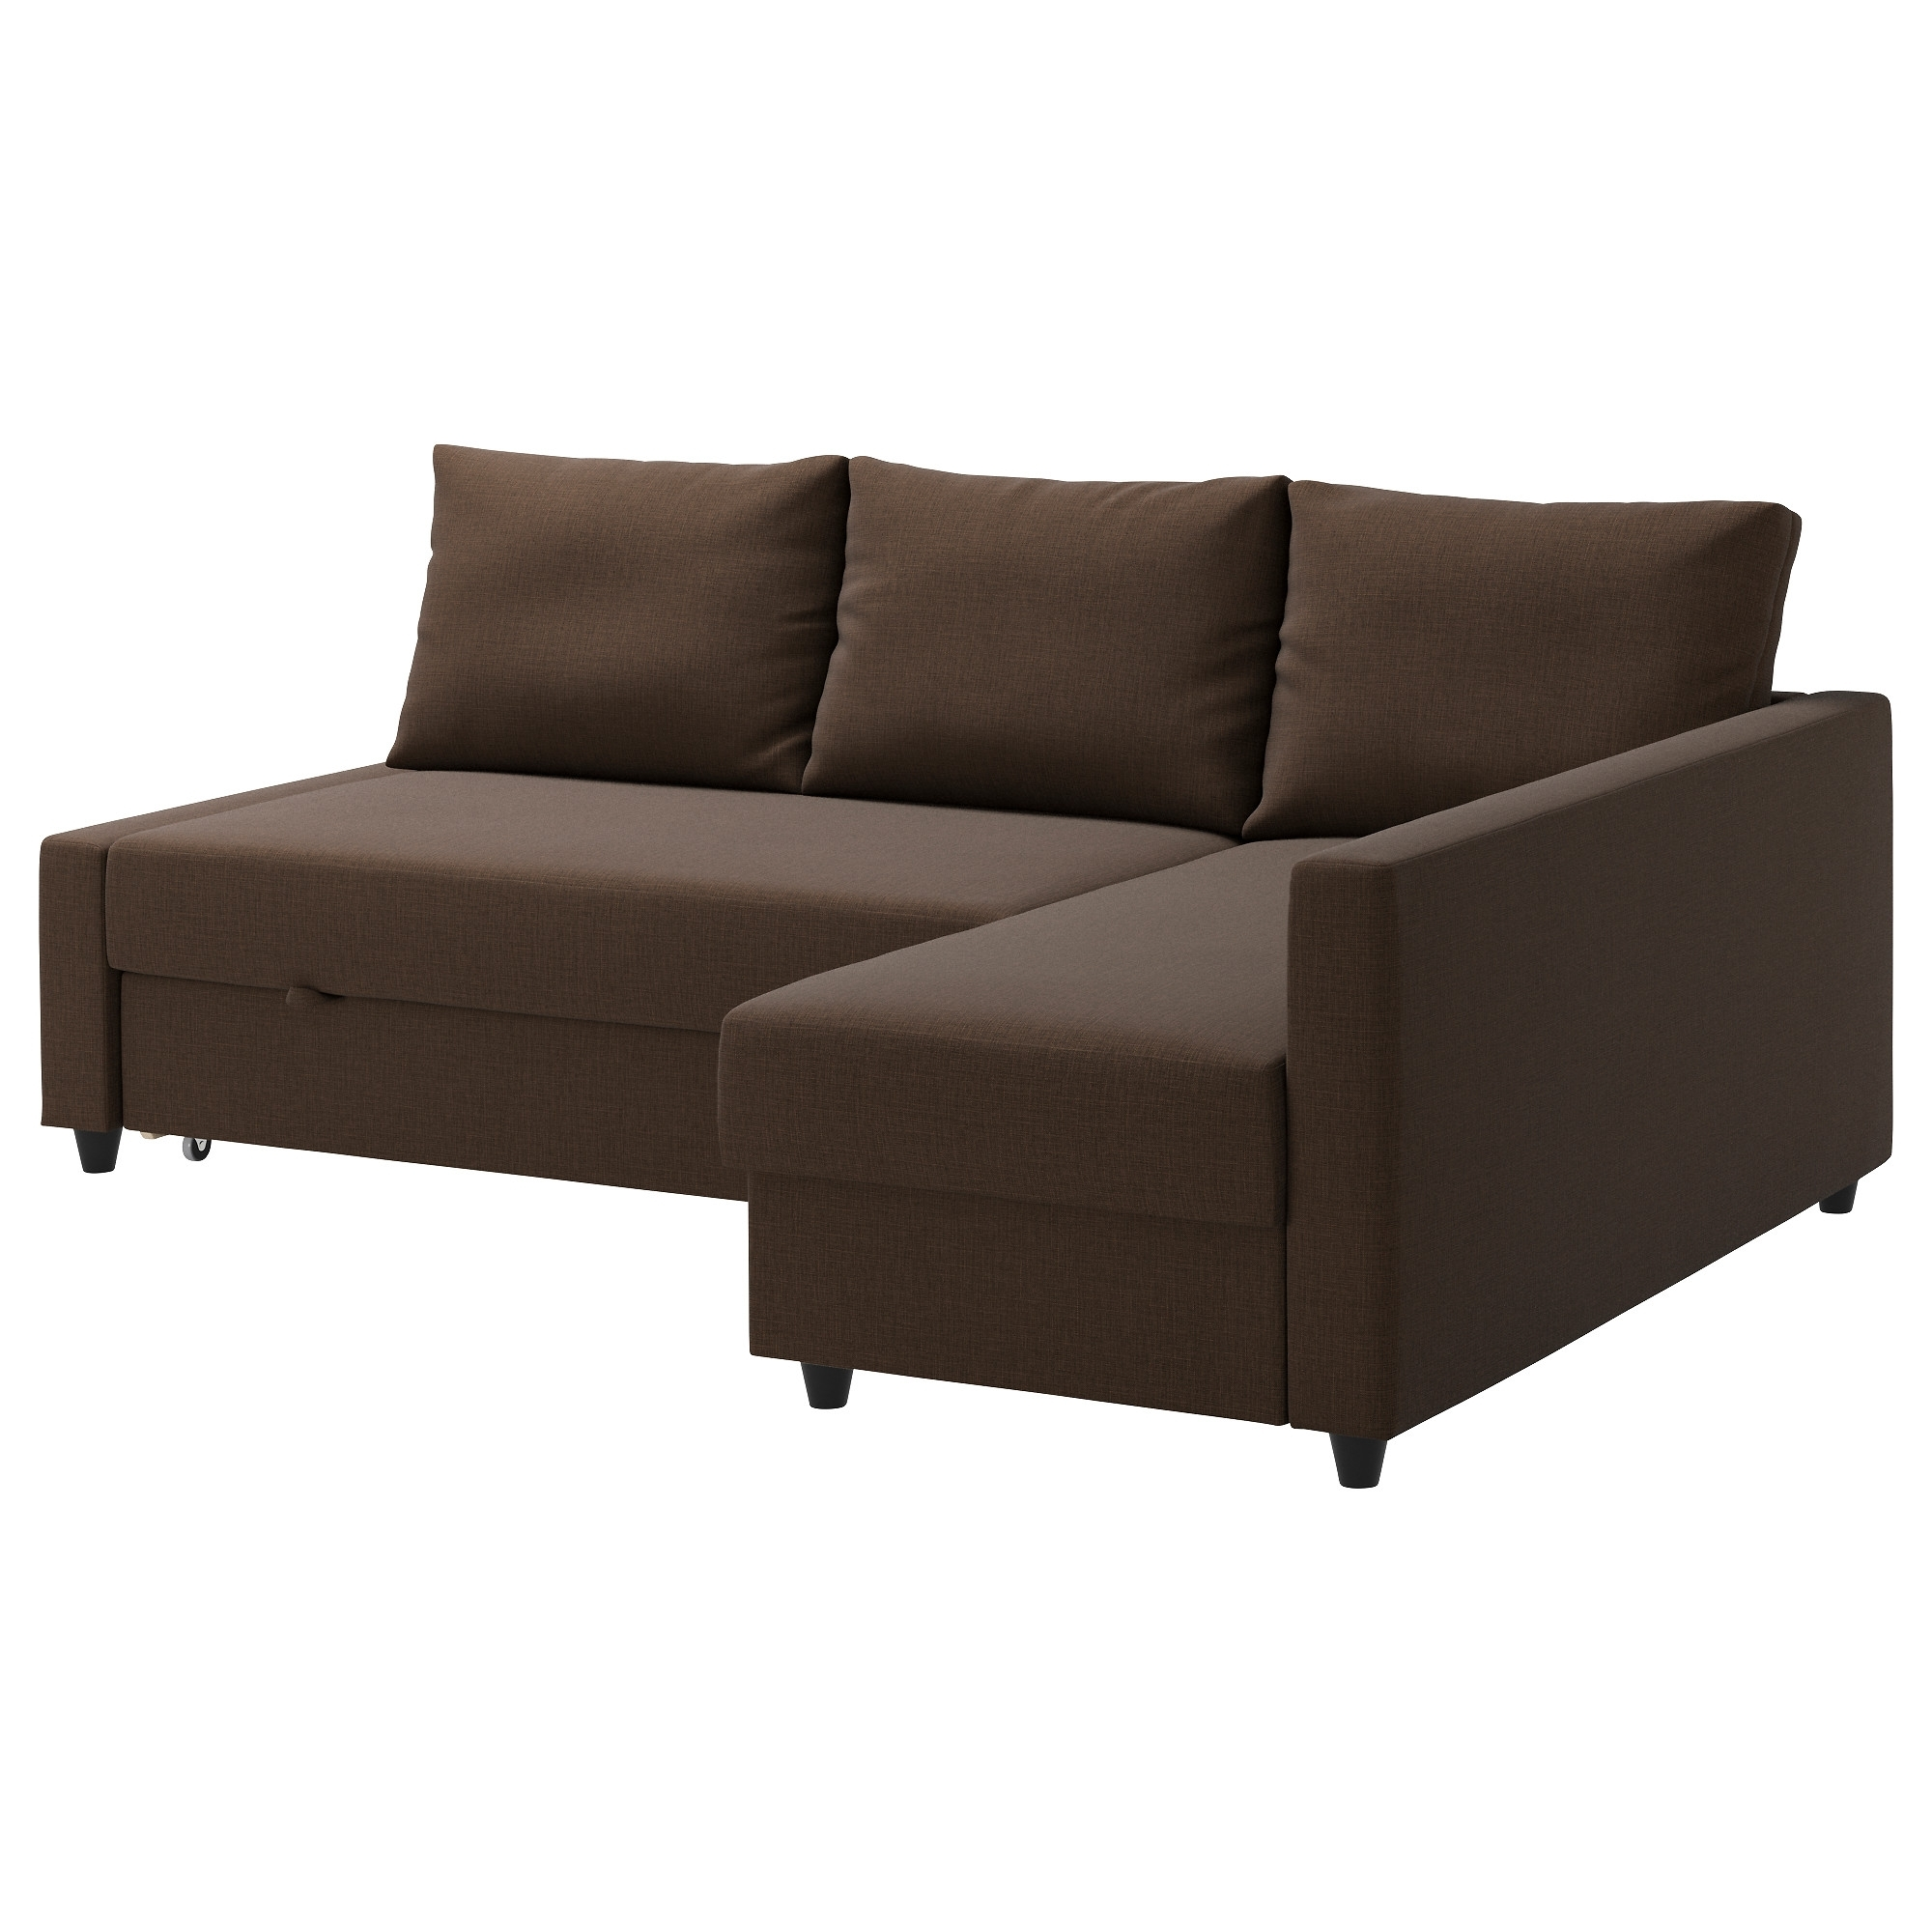 Friheten Corner Sofa Bed With Storage Skiftebo Brown – Ikea For Ikea Corner Sofas With Storage (View 6 of 10)